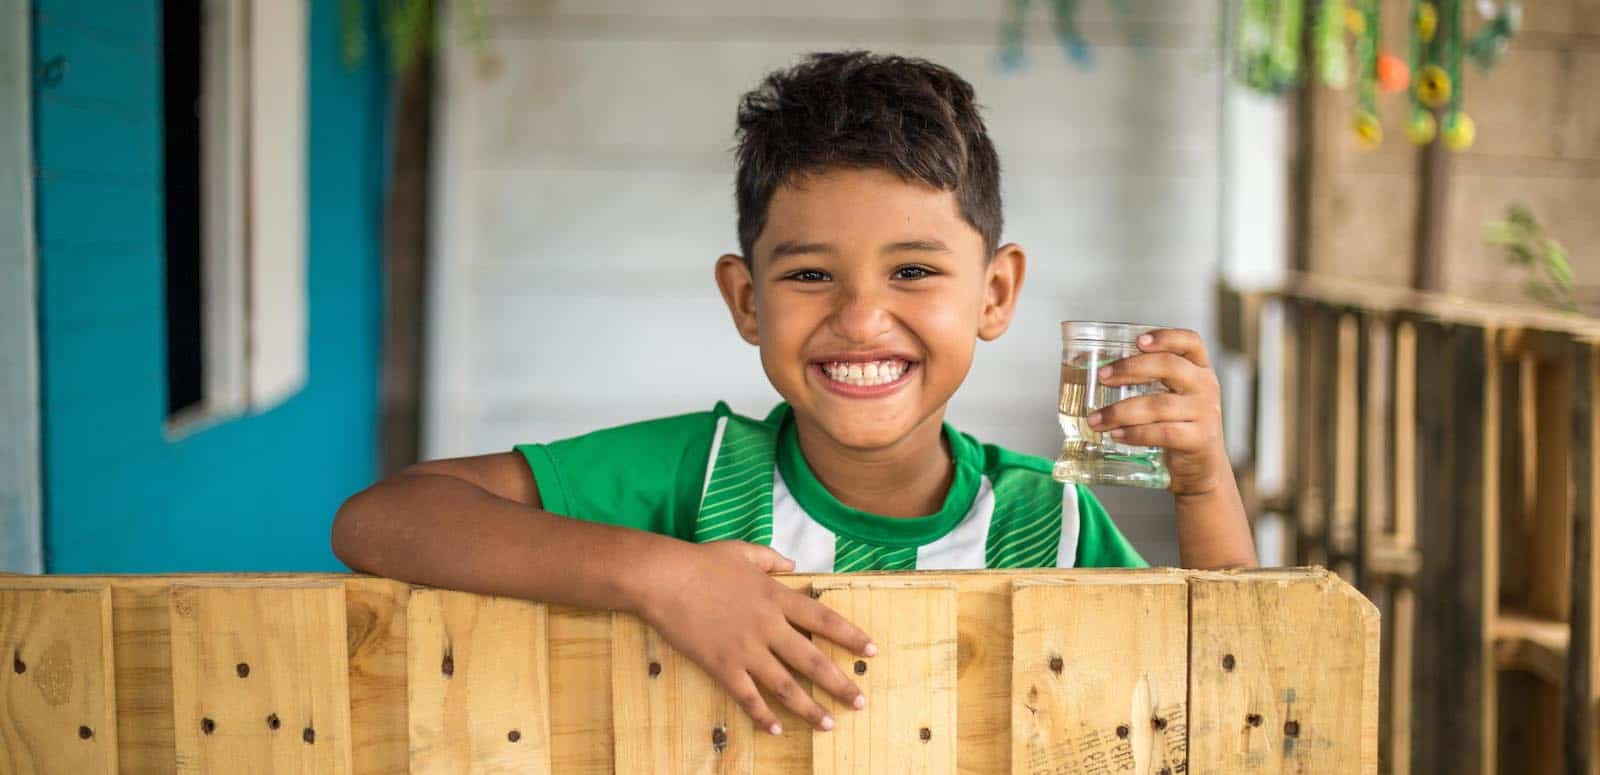 Kids Around the World: A boy stands at a fence holding a glass of water.